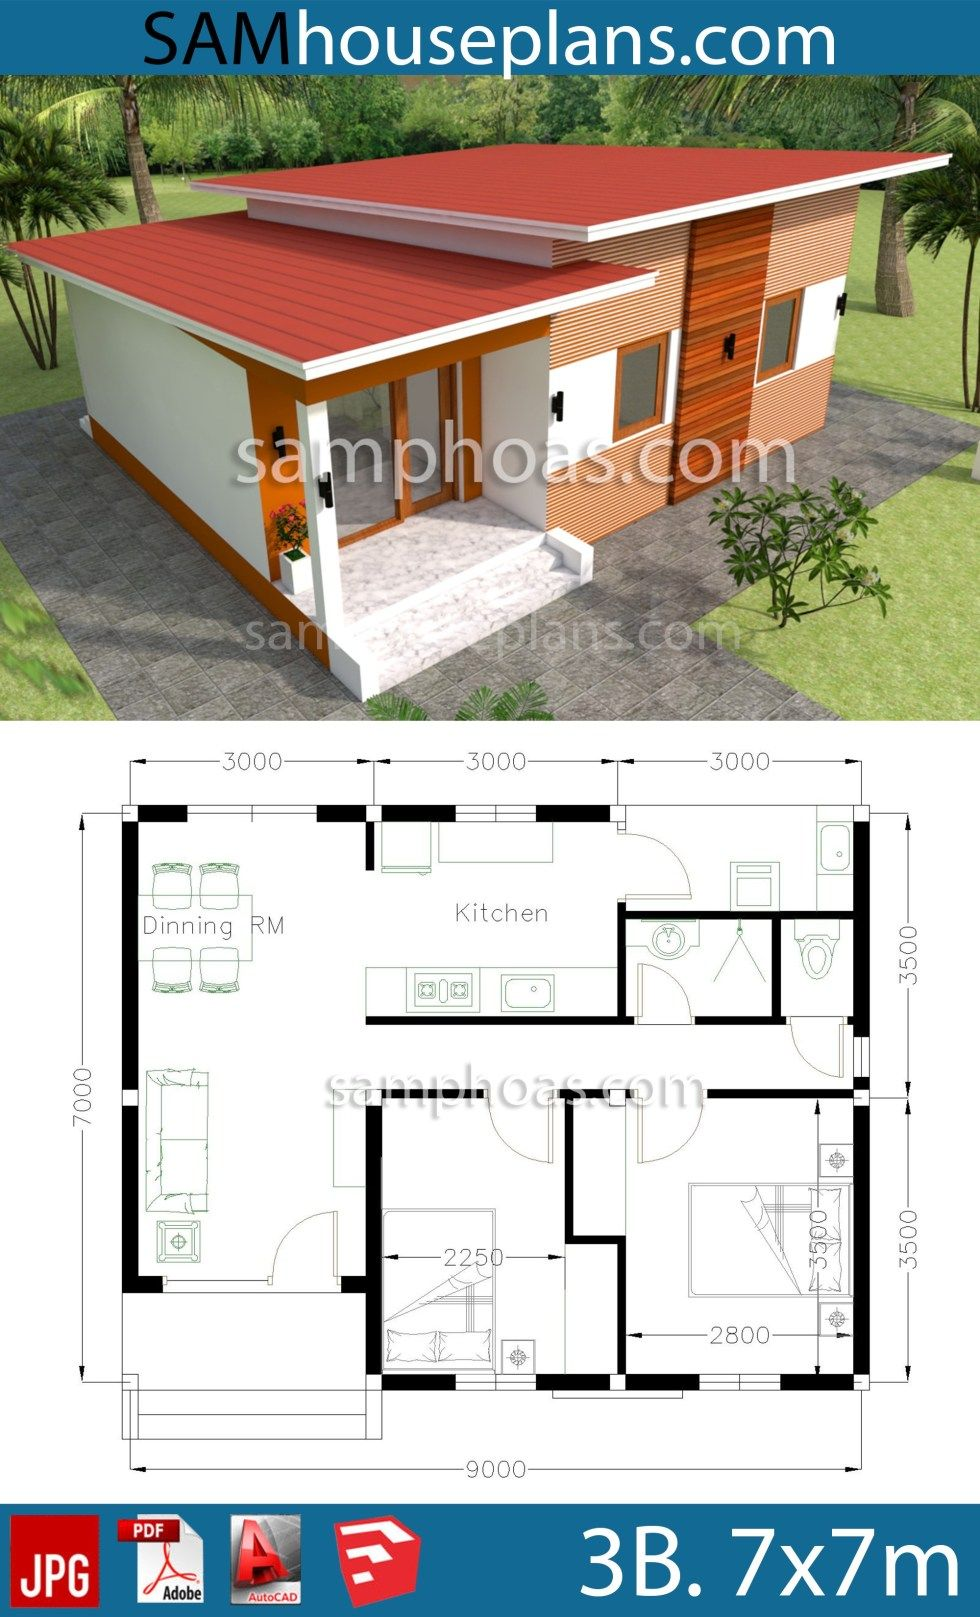 House Plans 9x7m With 2 Bedrooms In 2020 My House Plans House